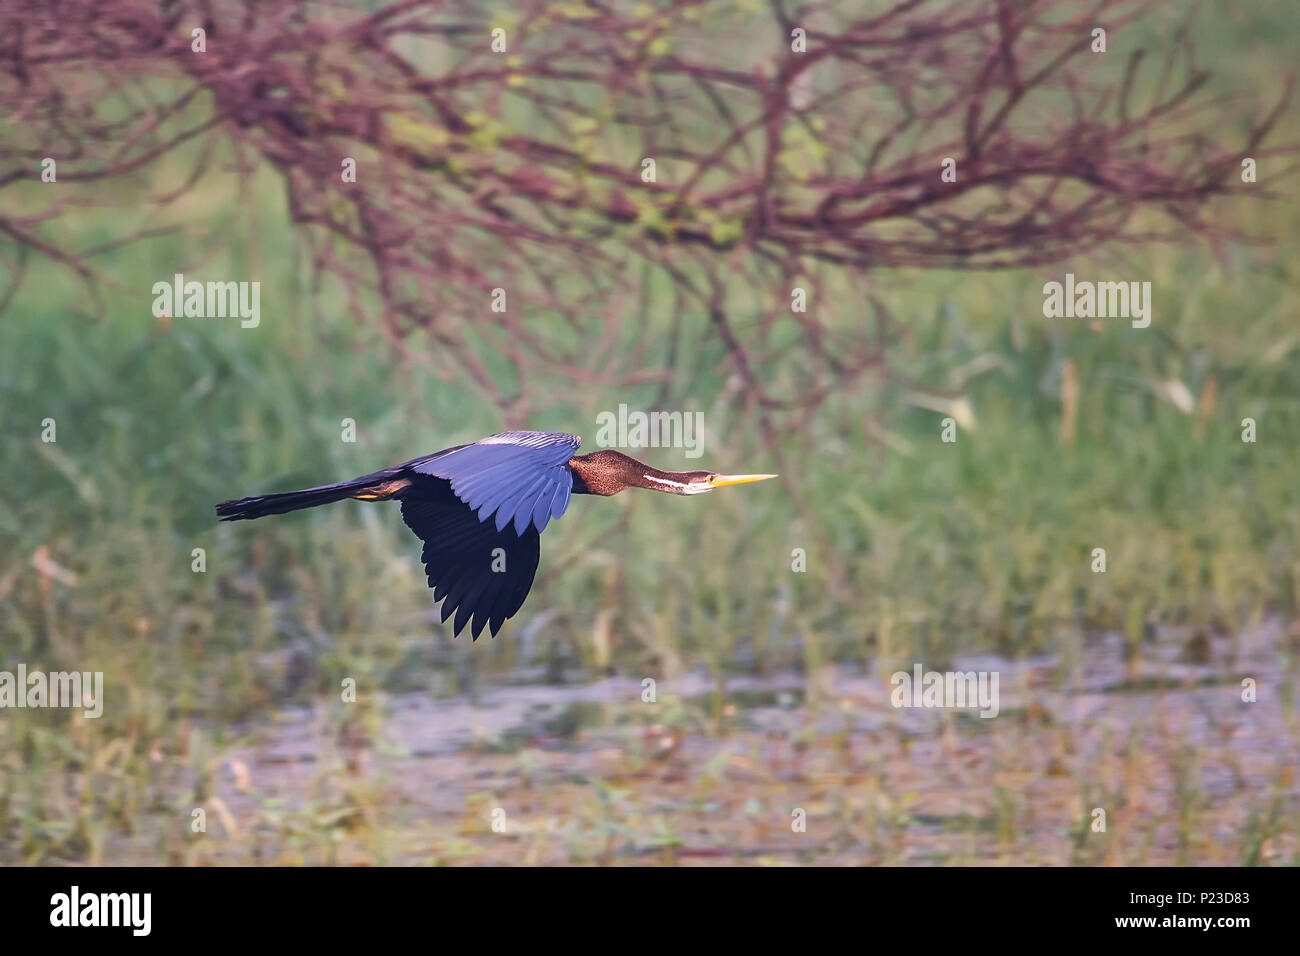 Oriental darter (Anhinga melanogaster) flying in Keoladeo Ghana National Park, Bharatpur, India. The park was declared a protected sanctuary in 1971. - Stock Image